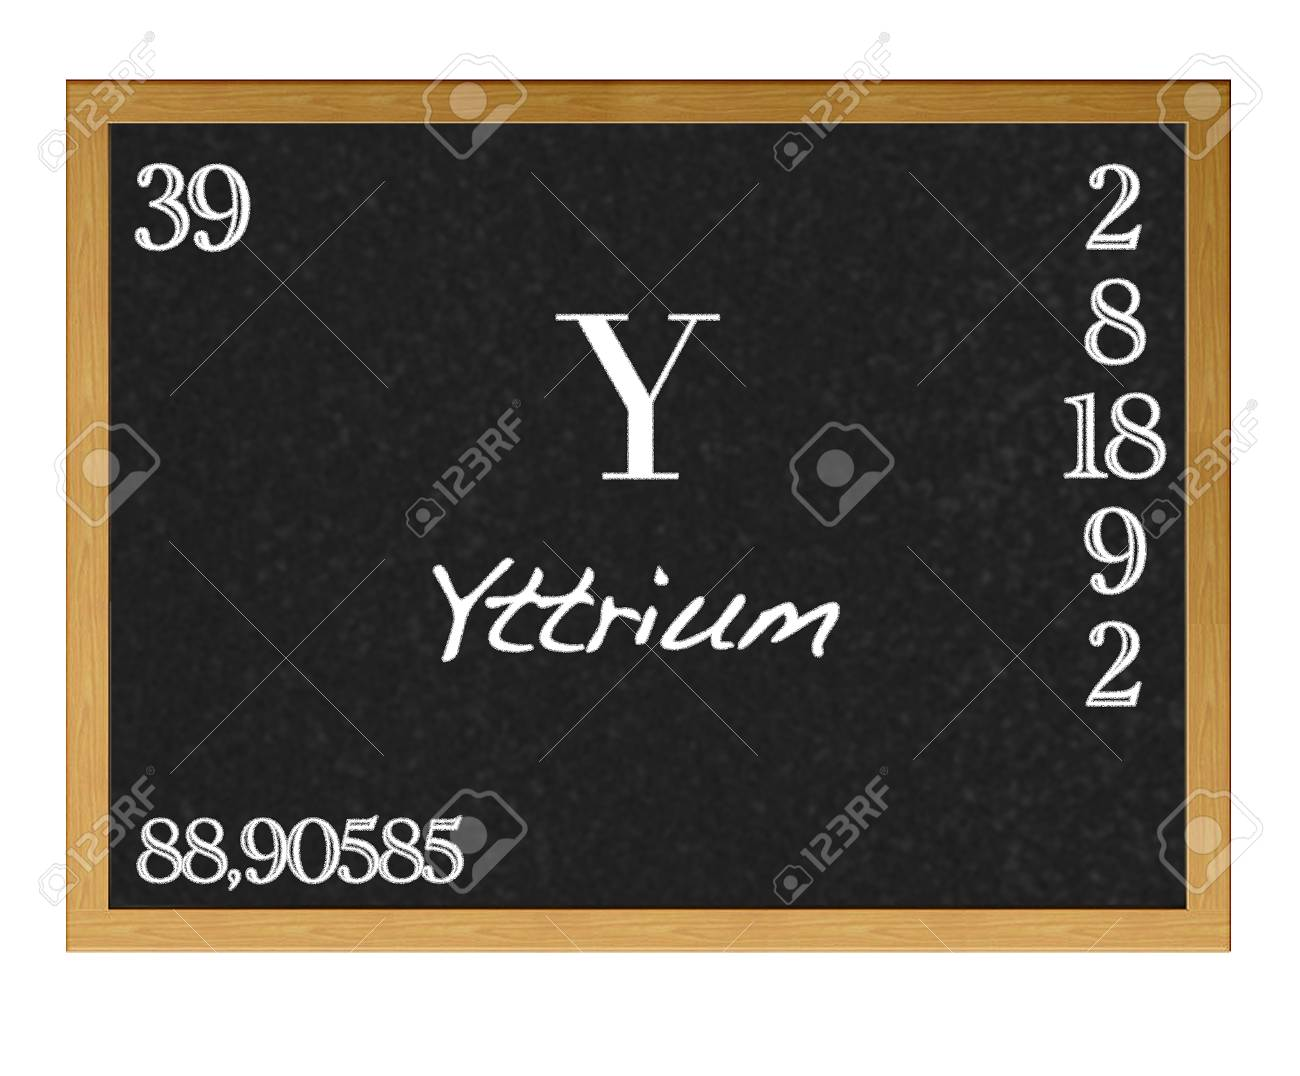 Isolated blackboard with periodic table yttrium stock photo isolated blackboard with periodic table yttrium stock photo 13151312 urtaz Choice Image